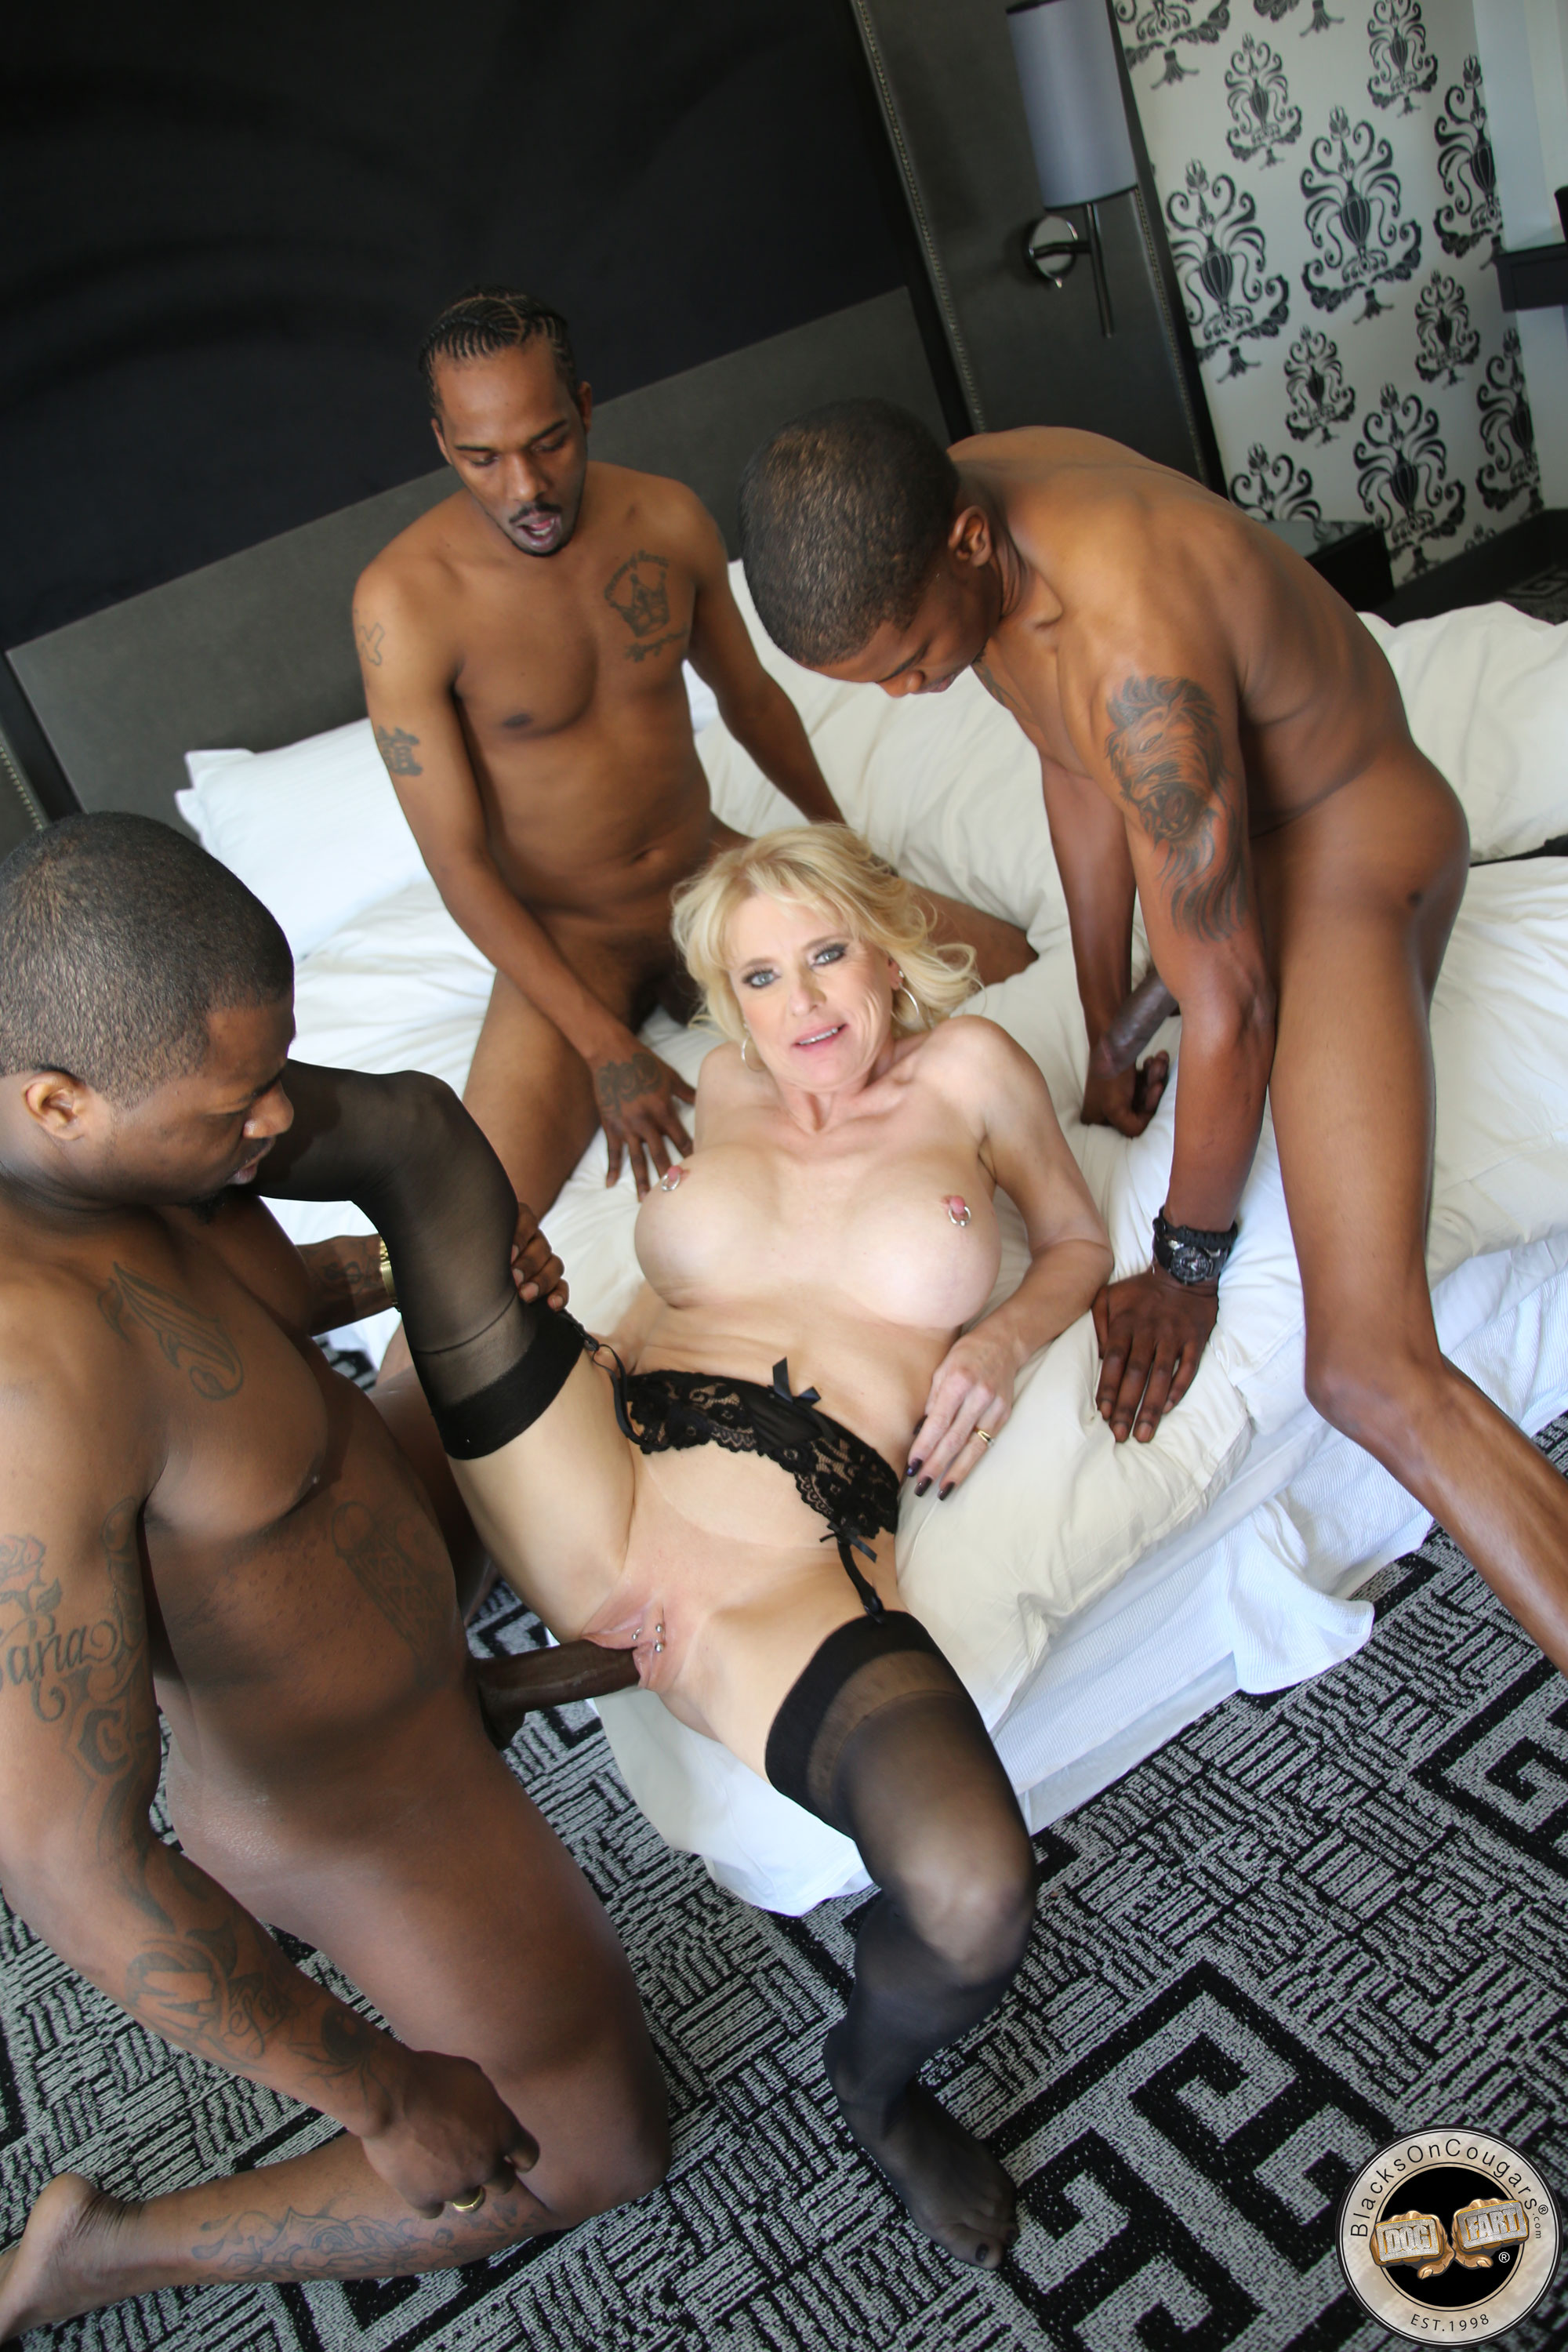 Kiki daire loves black men